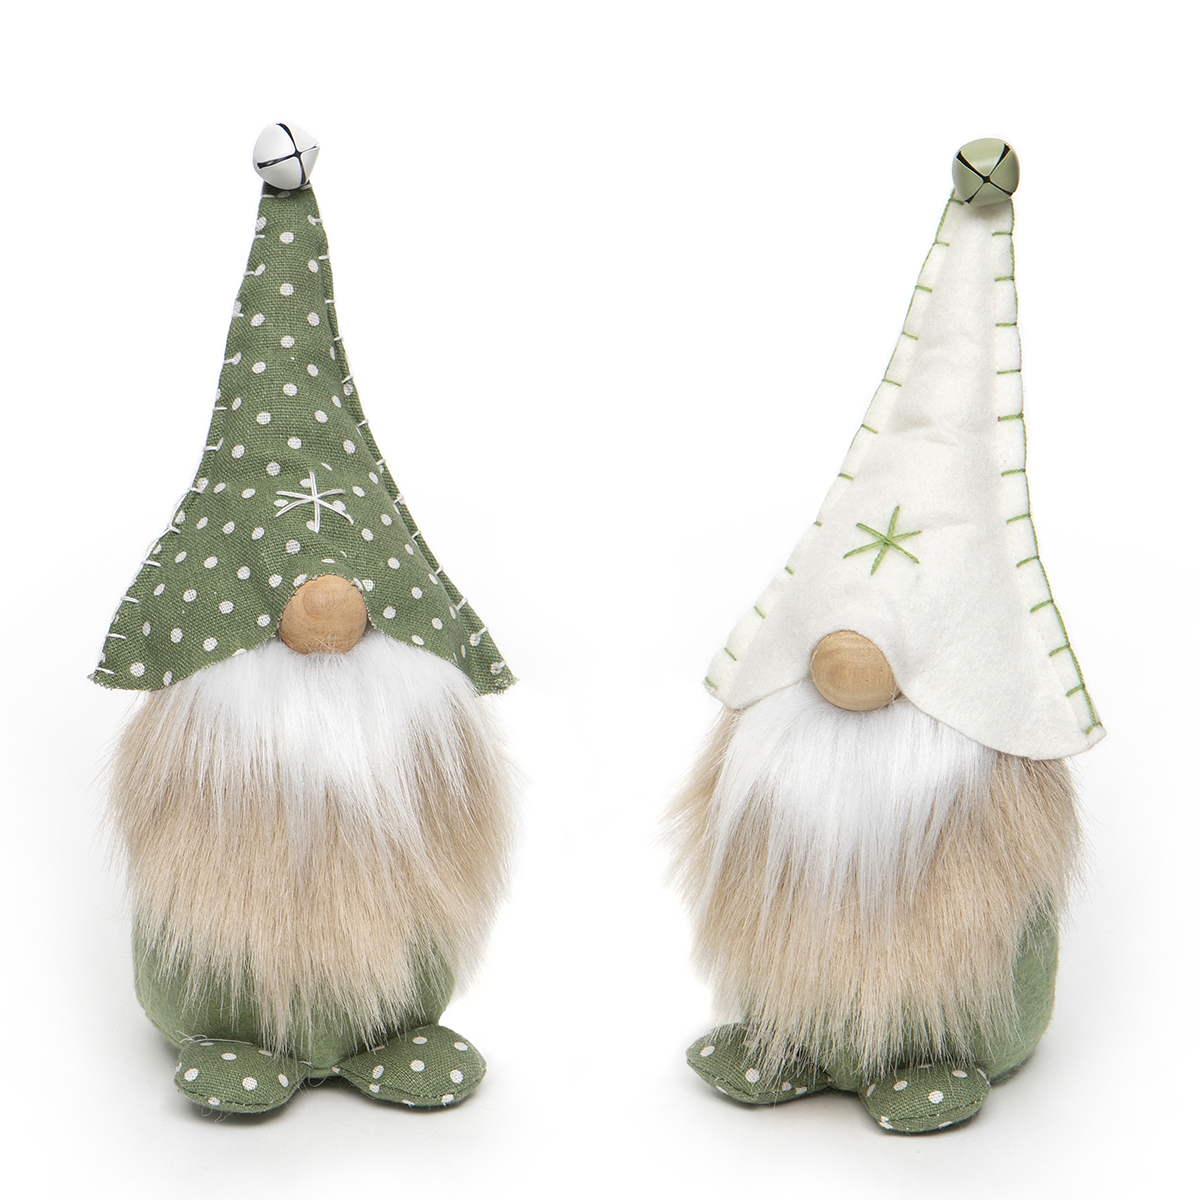 PINDOT GNOME WITH JINGLE BELL, SNOWFLAKE